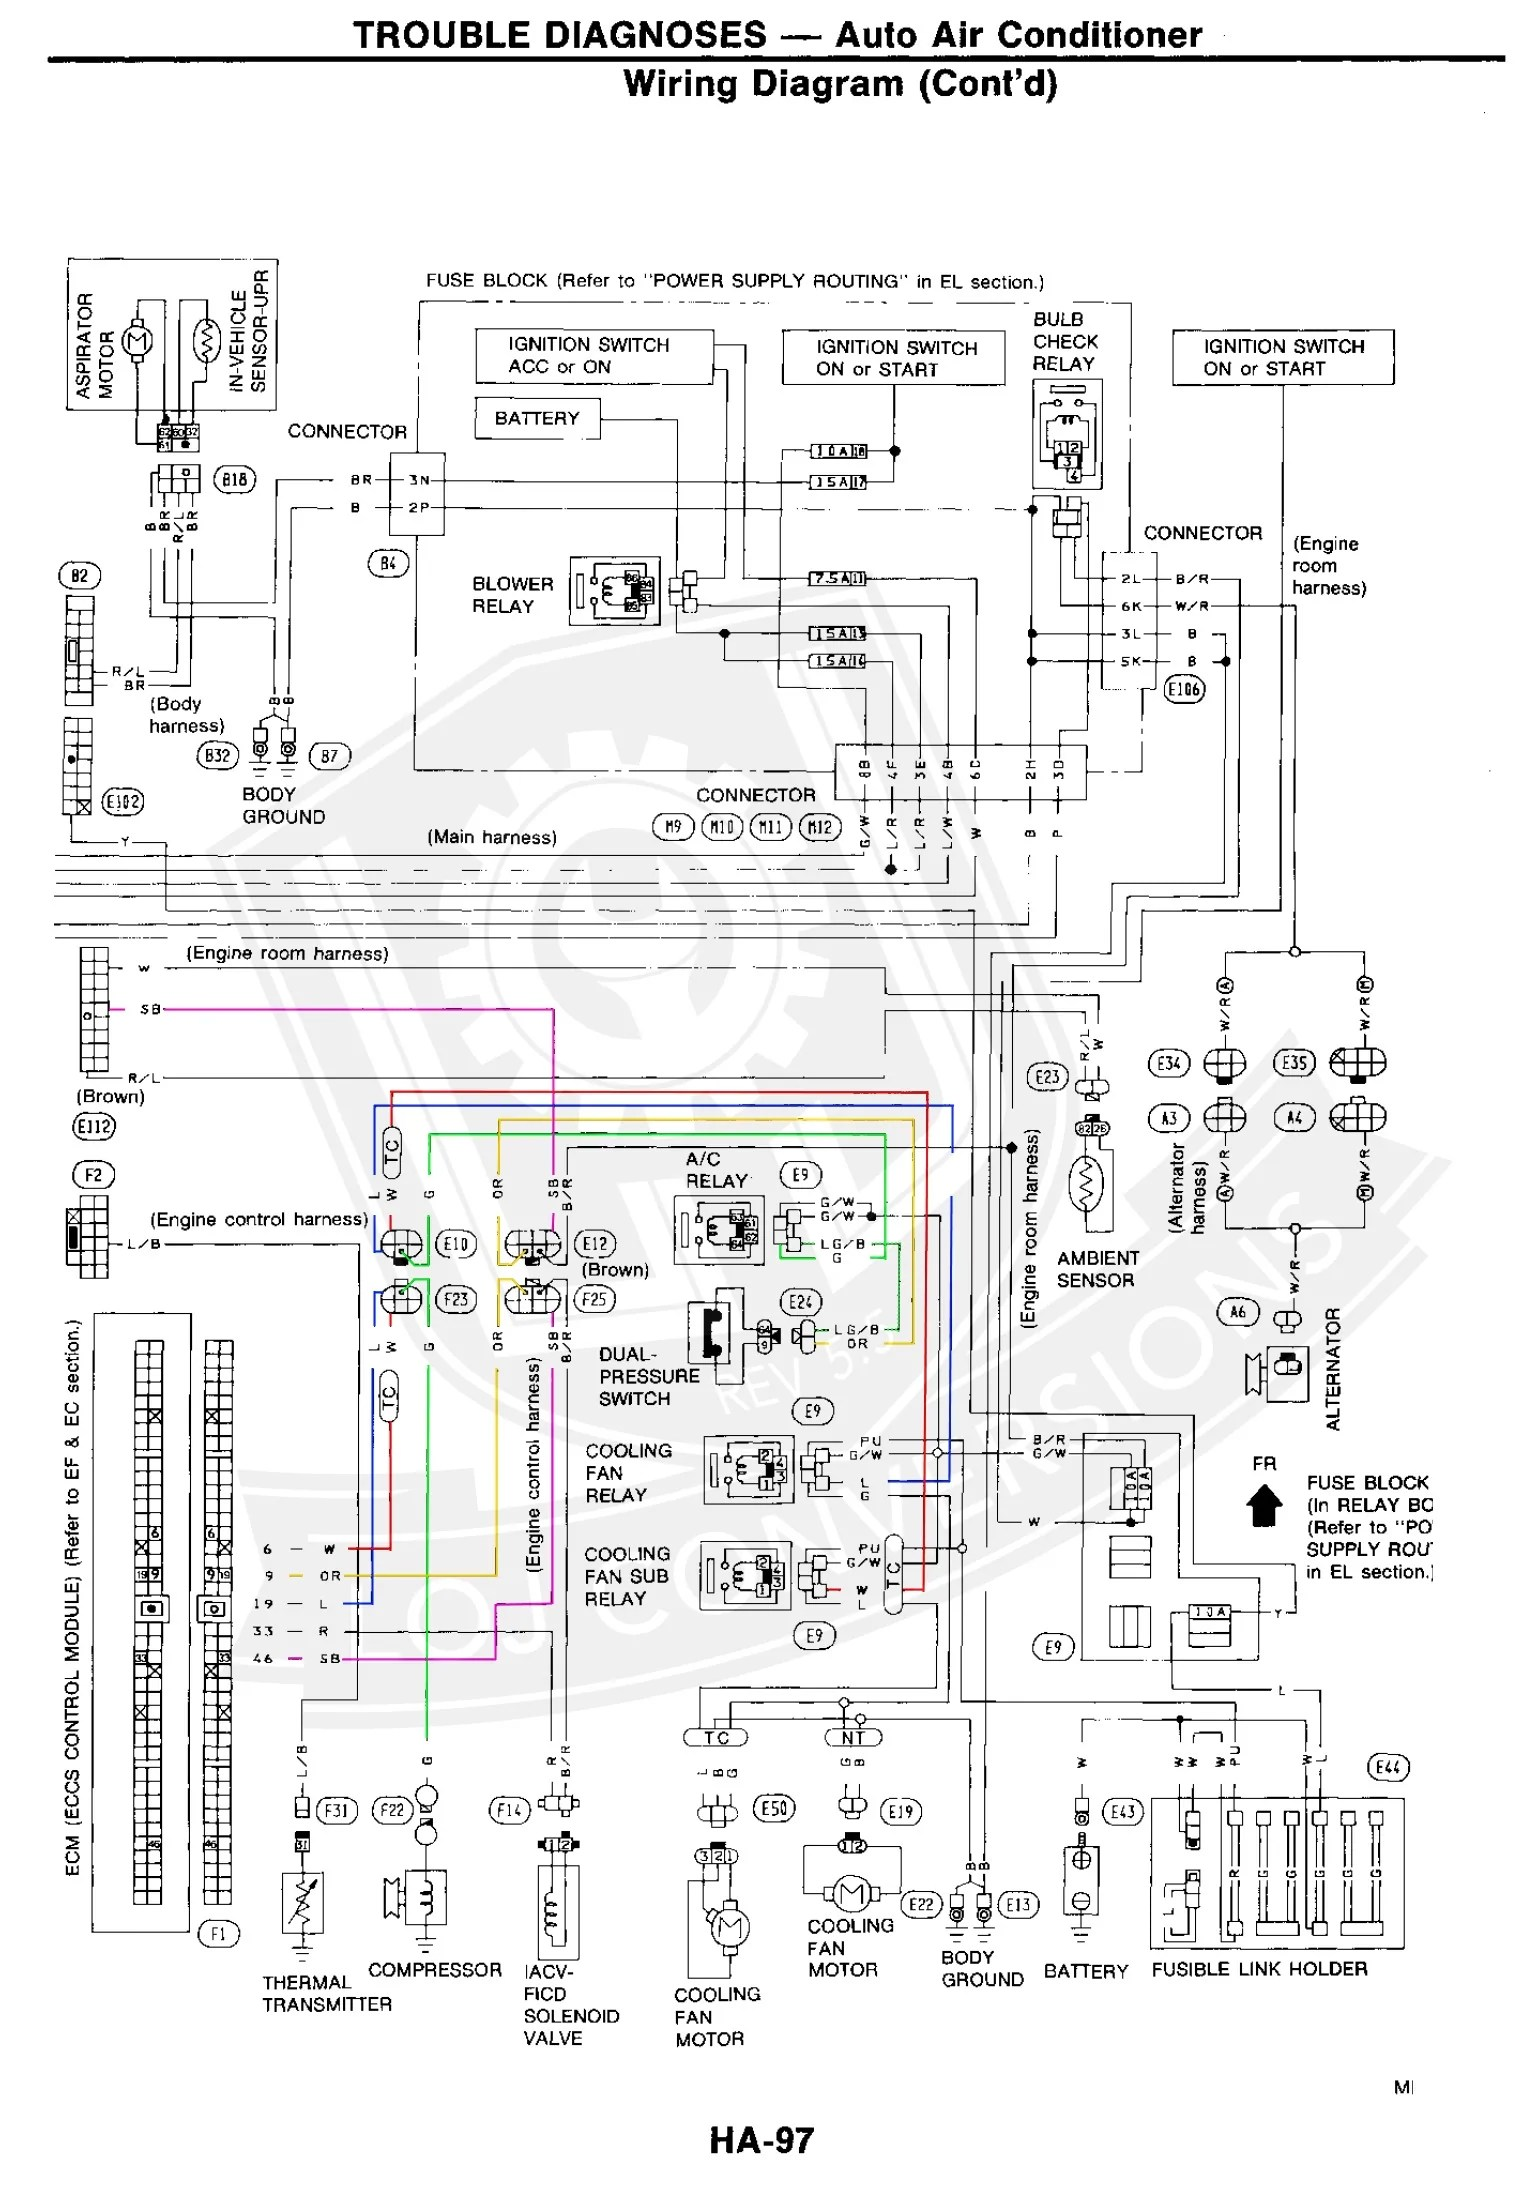 300ZX_AC_Wiring_Engine_Swap_02 300zx wiring diagram dolgular com  at reclaimingppi.co